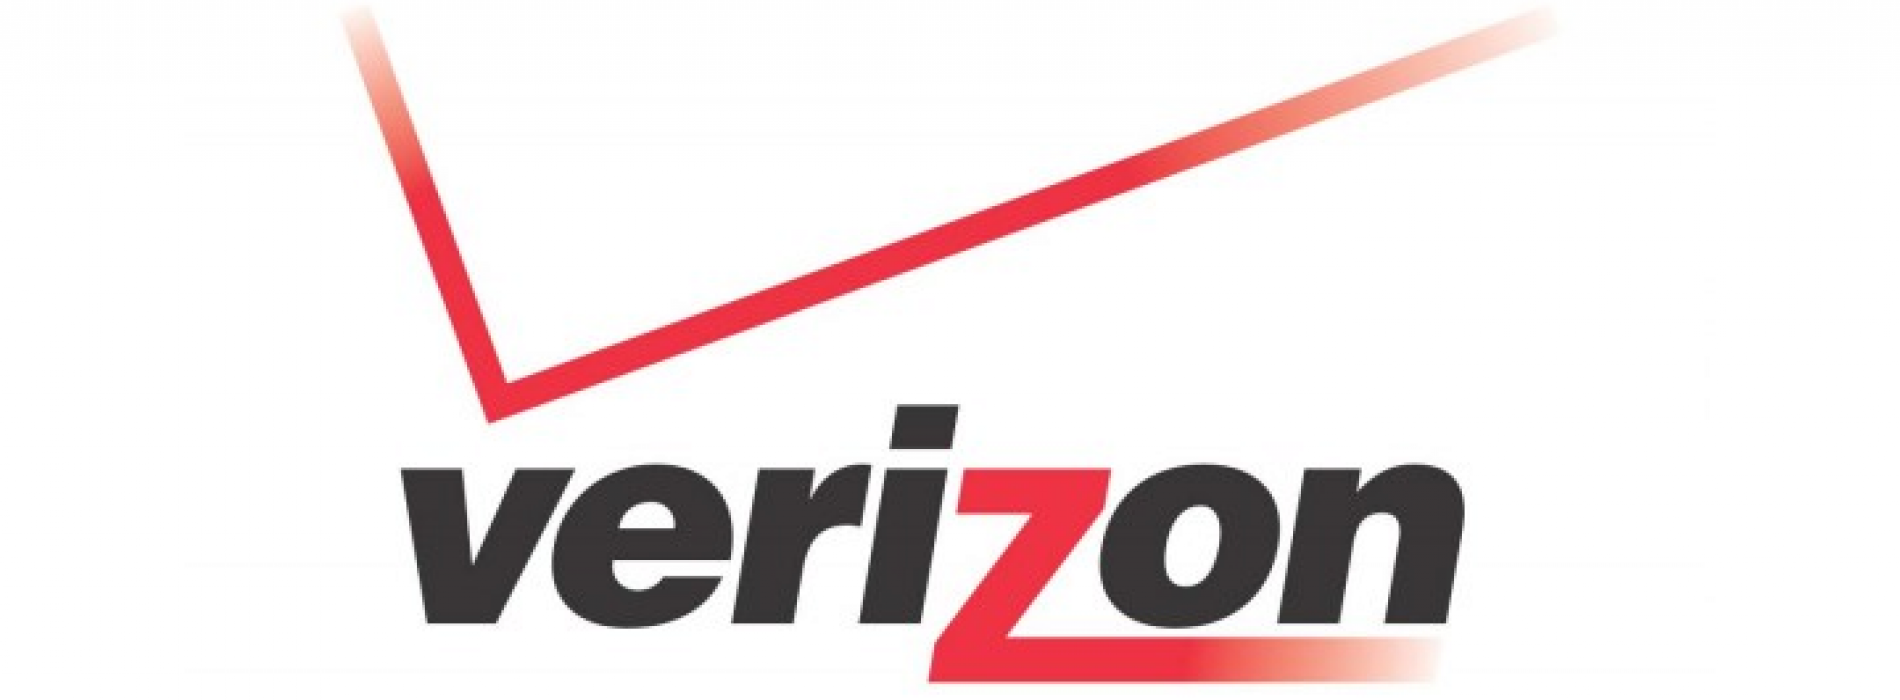 Verizon introduces $5 daily prepaid plan for tablets